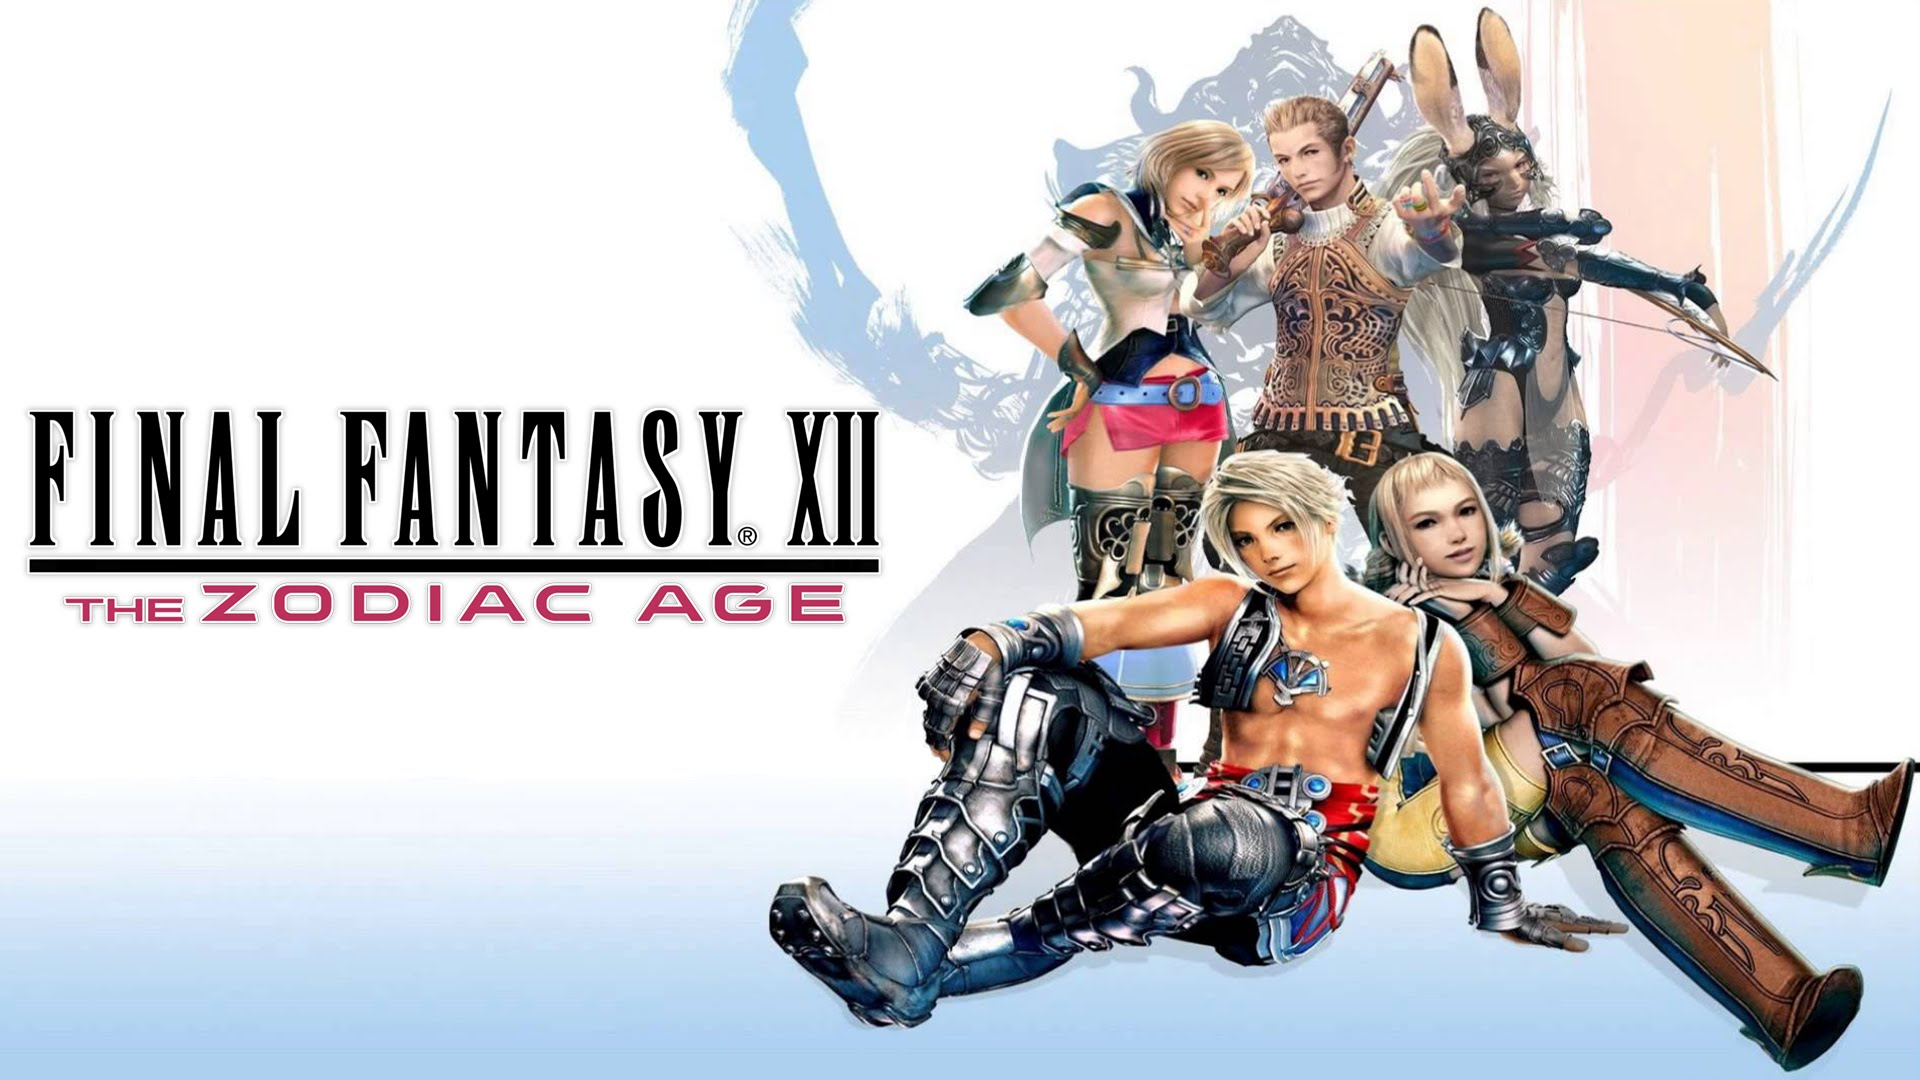 We're streaming Final Fantasy XII: The Zodiac Age at 3PM EDT